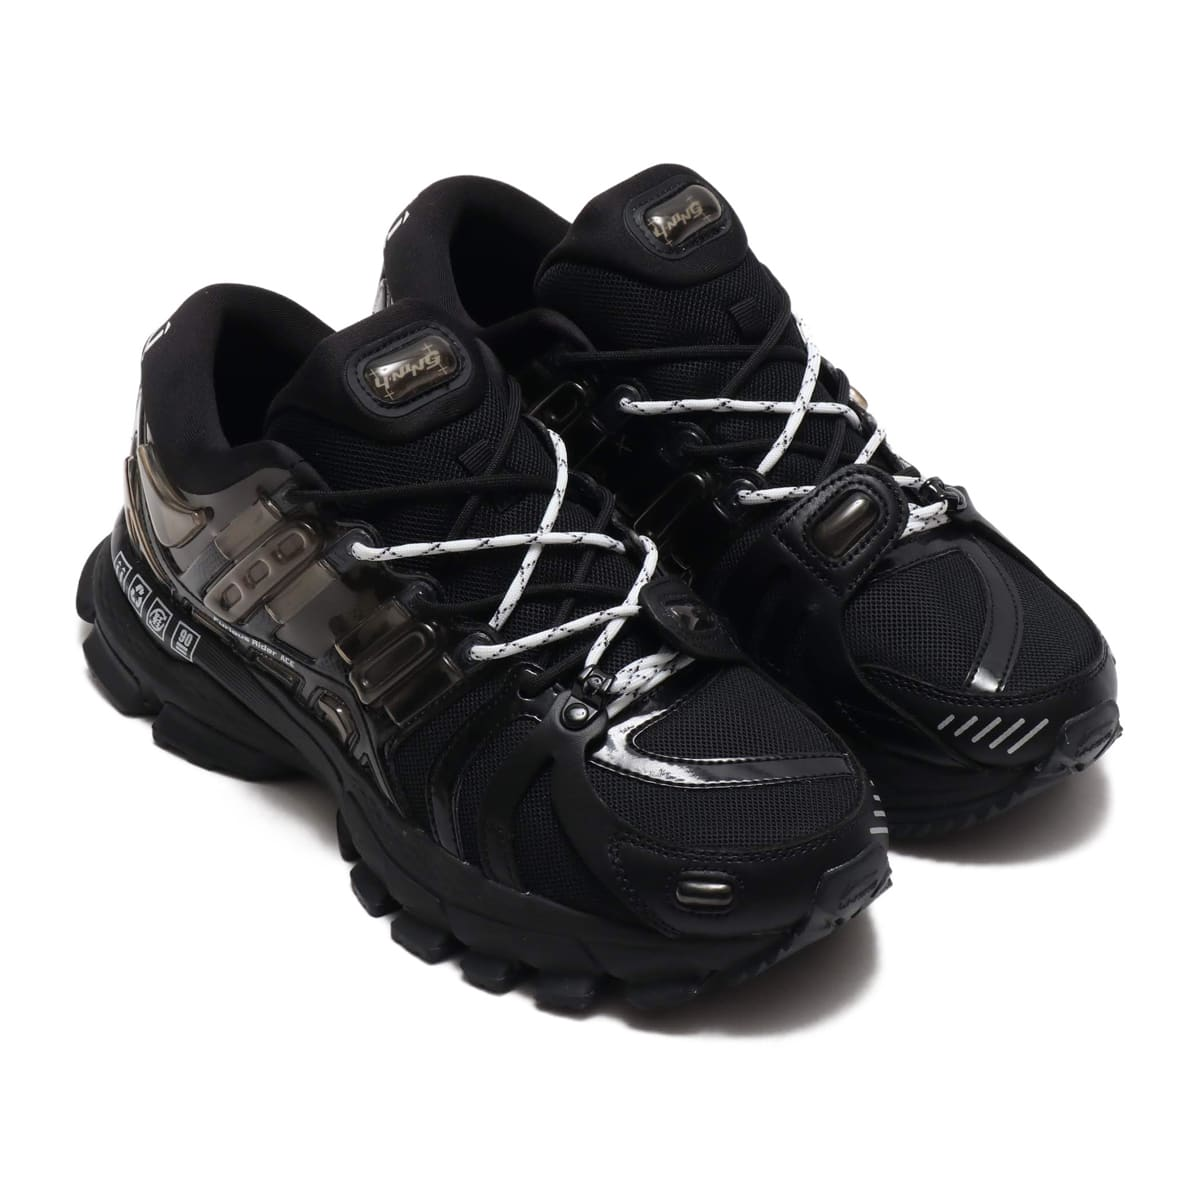 LI-NING FURIOUS RIDER ACE 1.5 BLACK 19SS-I_photo_large